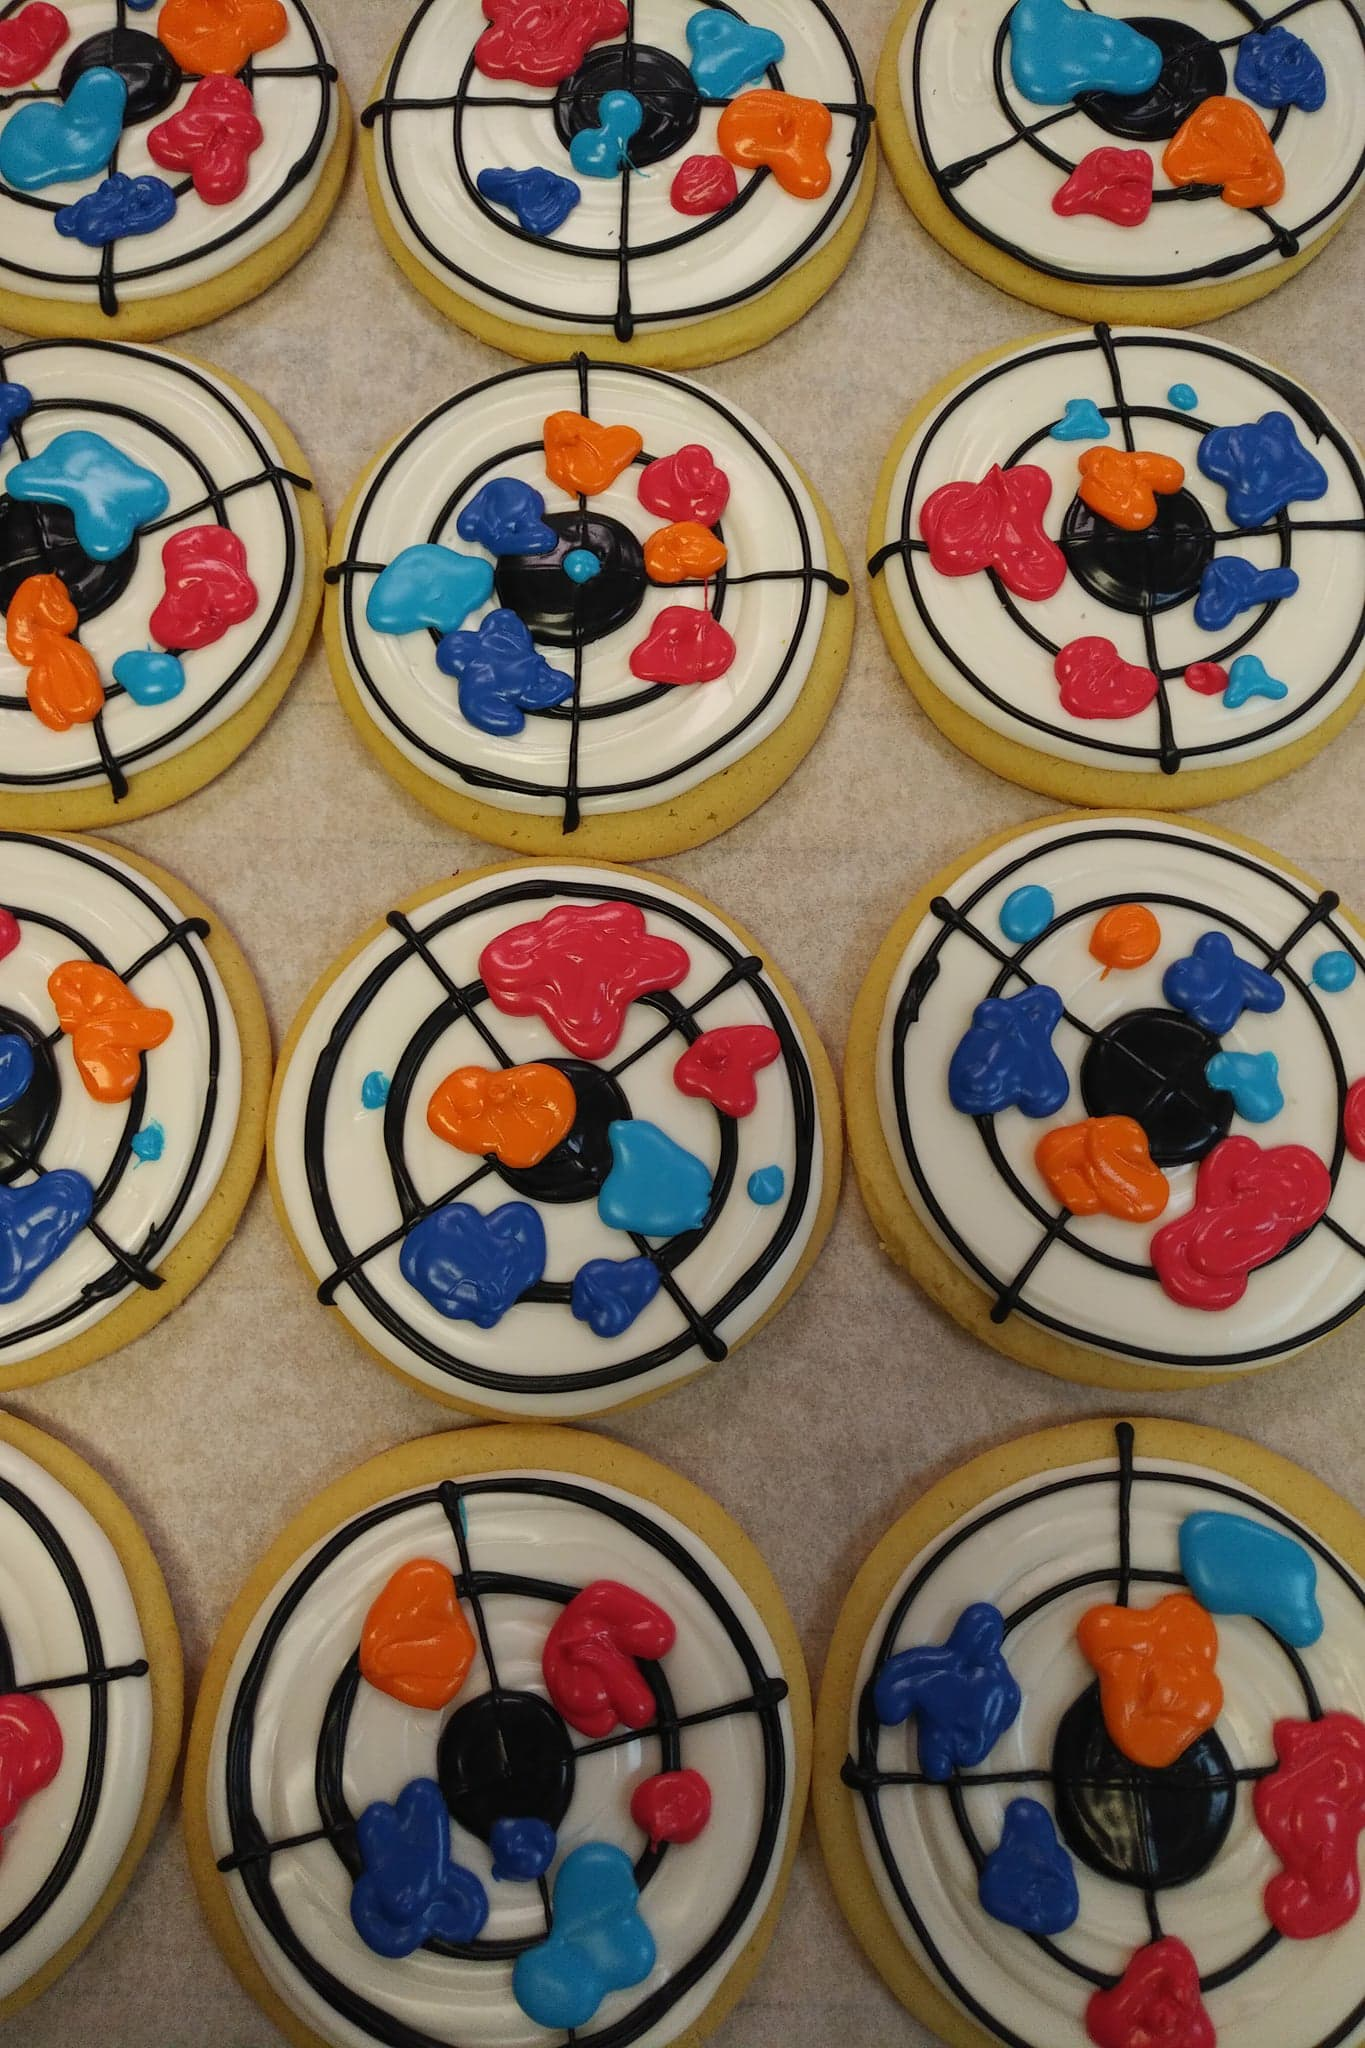 Paint Ball Target Cookies